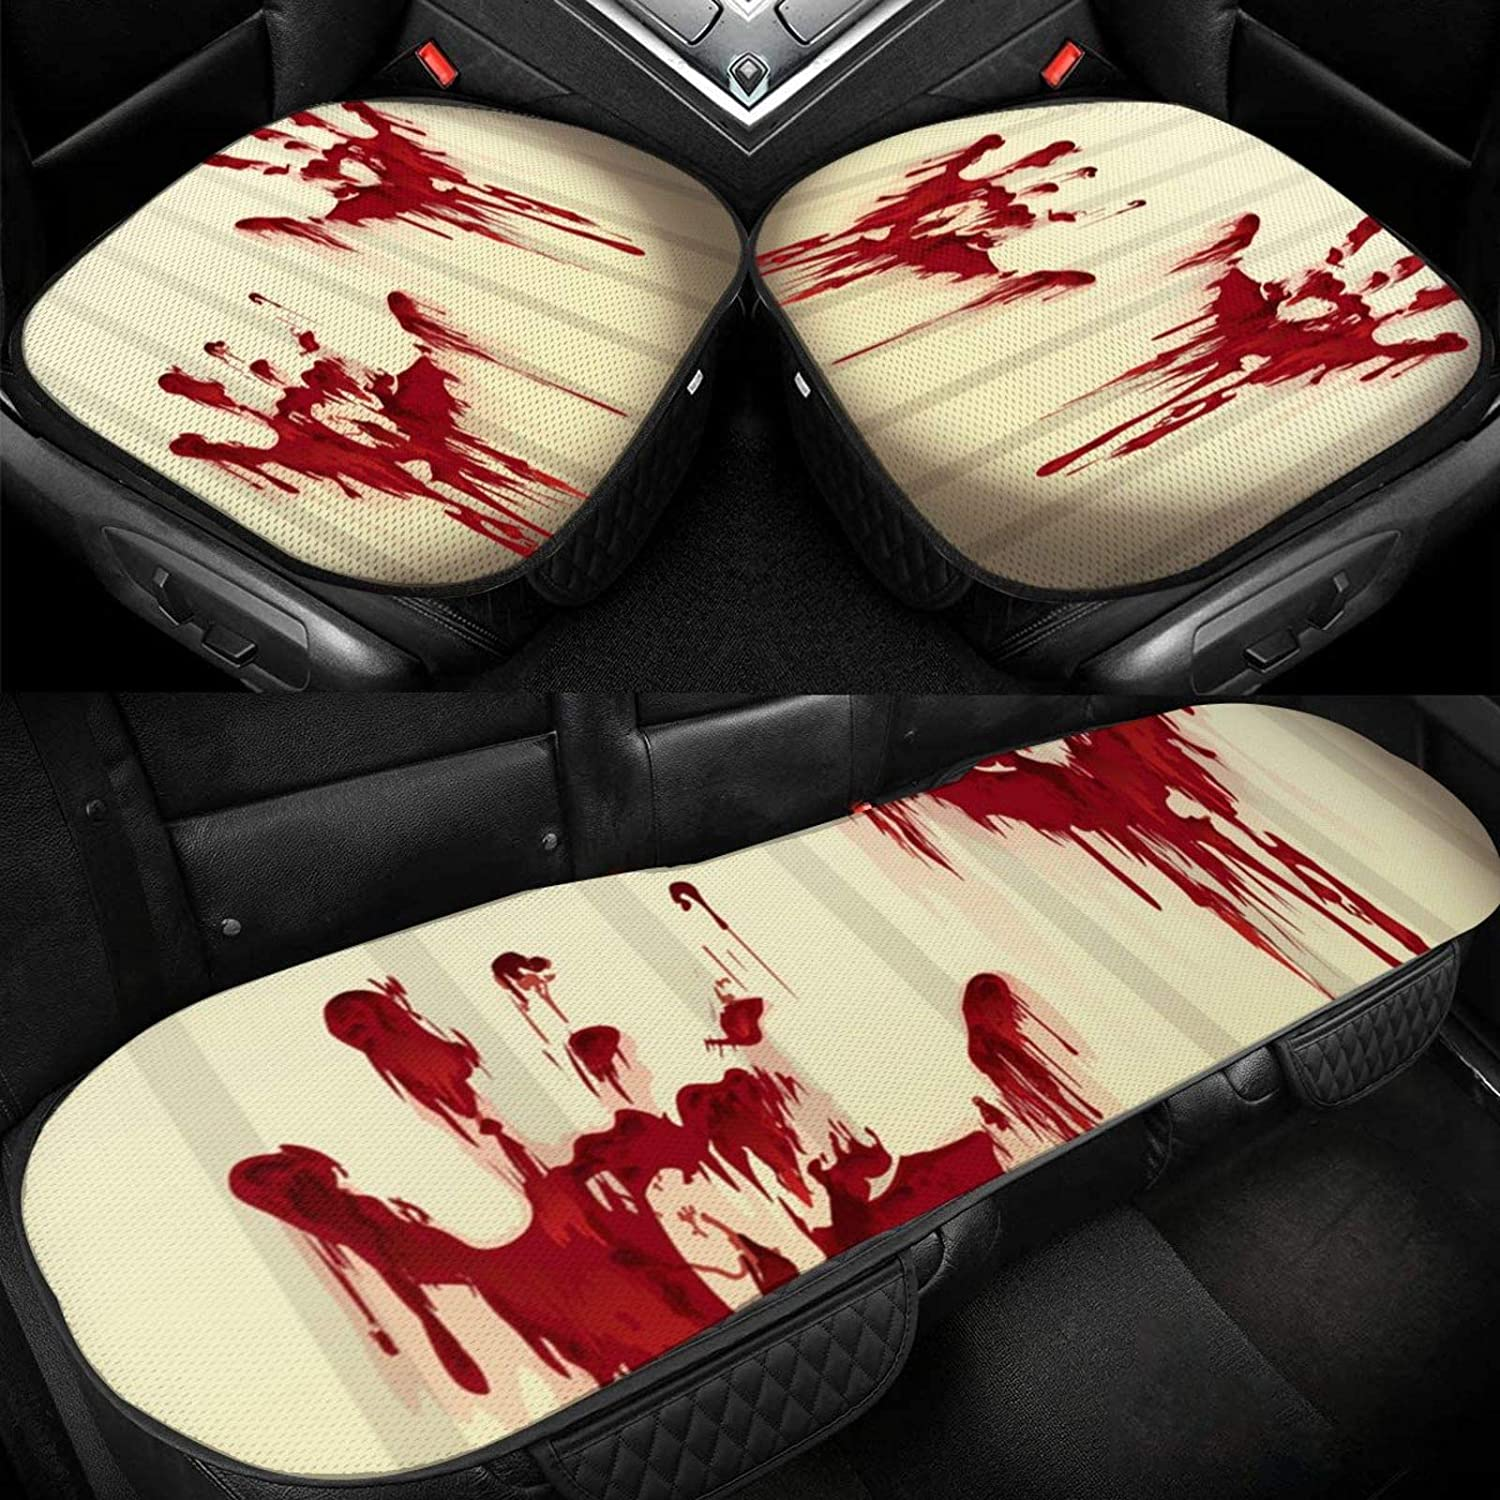 Car Seat Animer and price revision Cushion Covers for Bottom Cover Horror-Hands-Print Super sale period limited